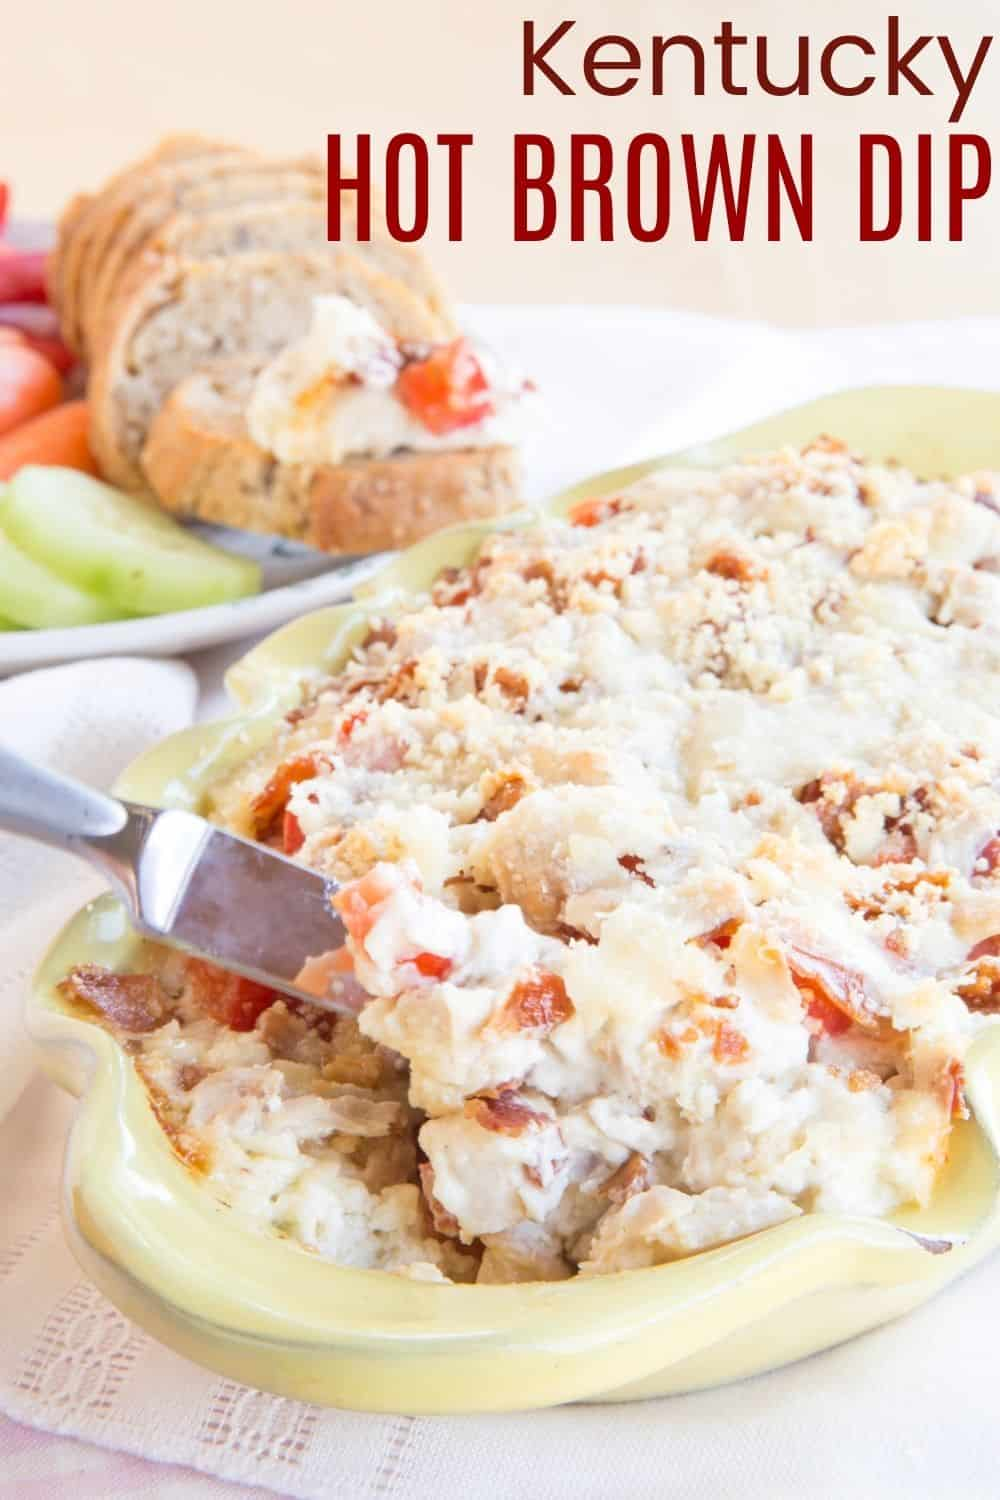 Kentucky Hot Brown Dip - an easy hot appetizer dip recipe based on the classic open-faced sandwich with turkey, bacon, and lots of cheese. Make this for a Kentucky Derby party, or any holiday celebration. It's also a great way to use up your leftover Christmas or Thanksgiving turkey. #cupcakesandkalechips #kentuckyhotbrown #hotbrown #derbyday #kentuckyderby #appetizer #hotdip #glutenfree #lowcarb #dip